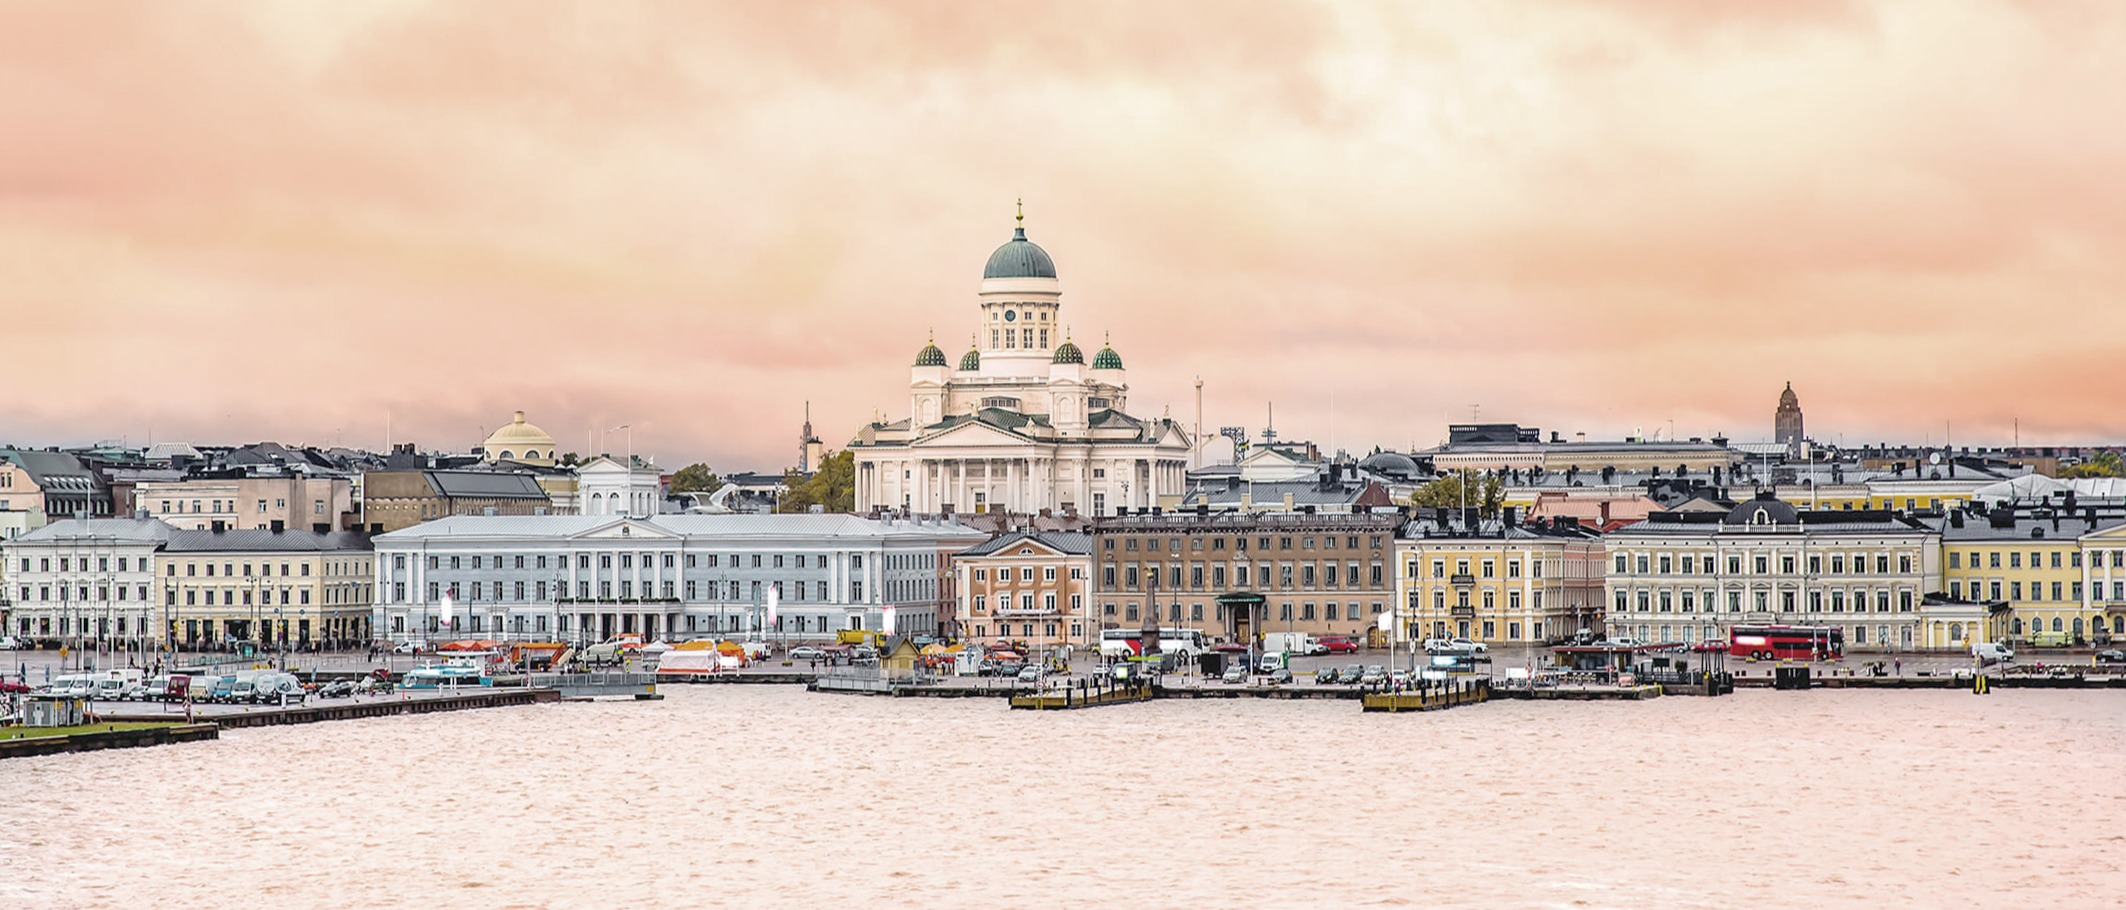 Helsinki-at-sunset-with-a-Cathedral-church-and-Market-Square-area_AdobeStock_2126x1297_tiny_crop